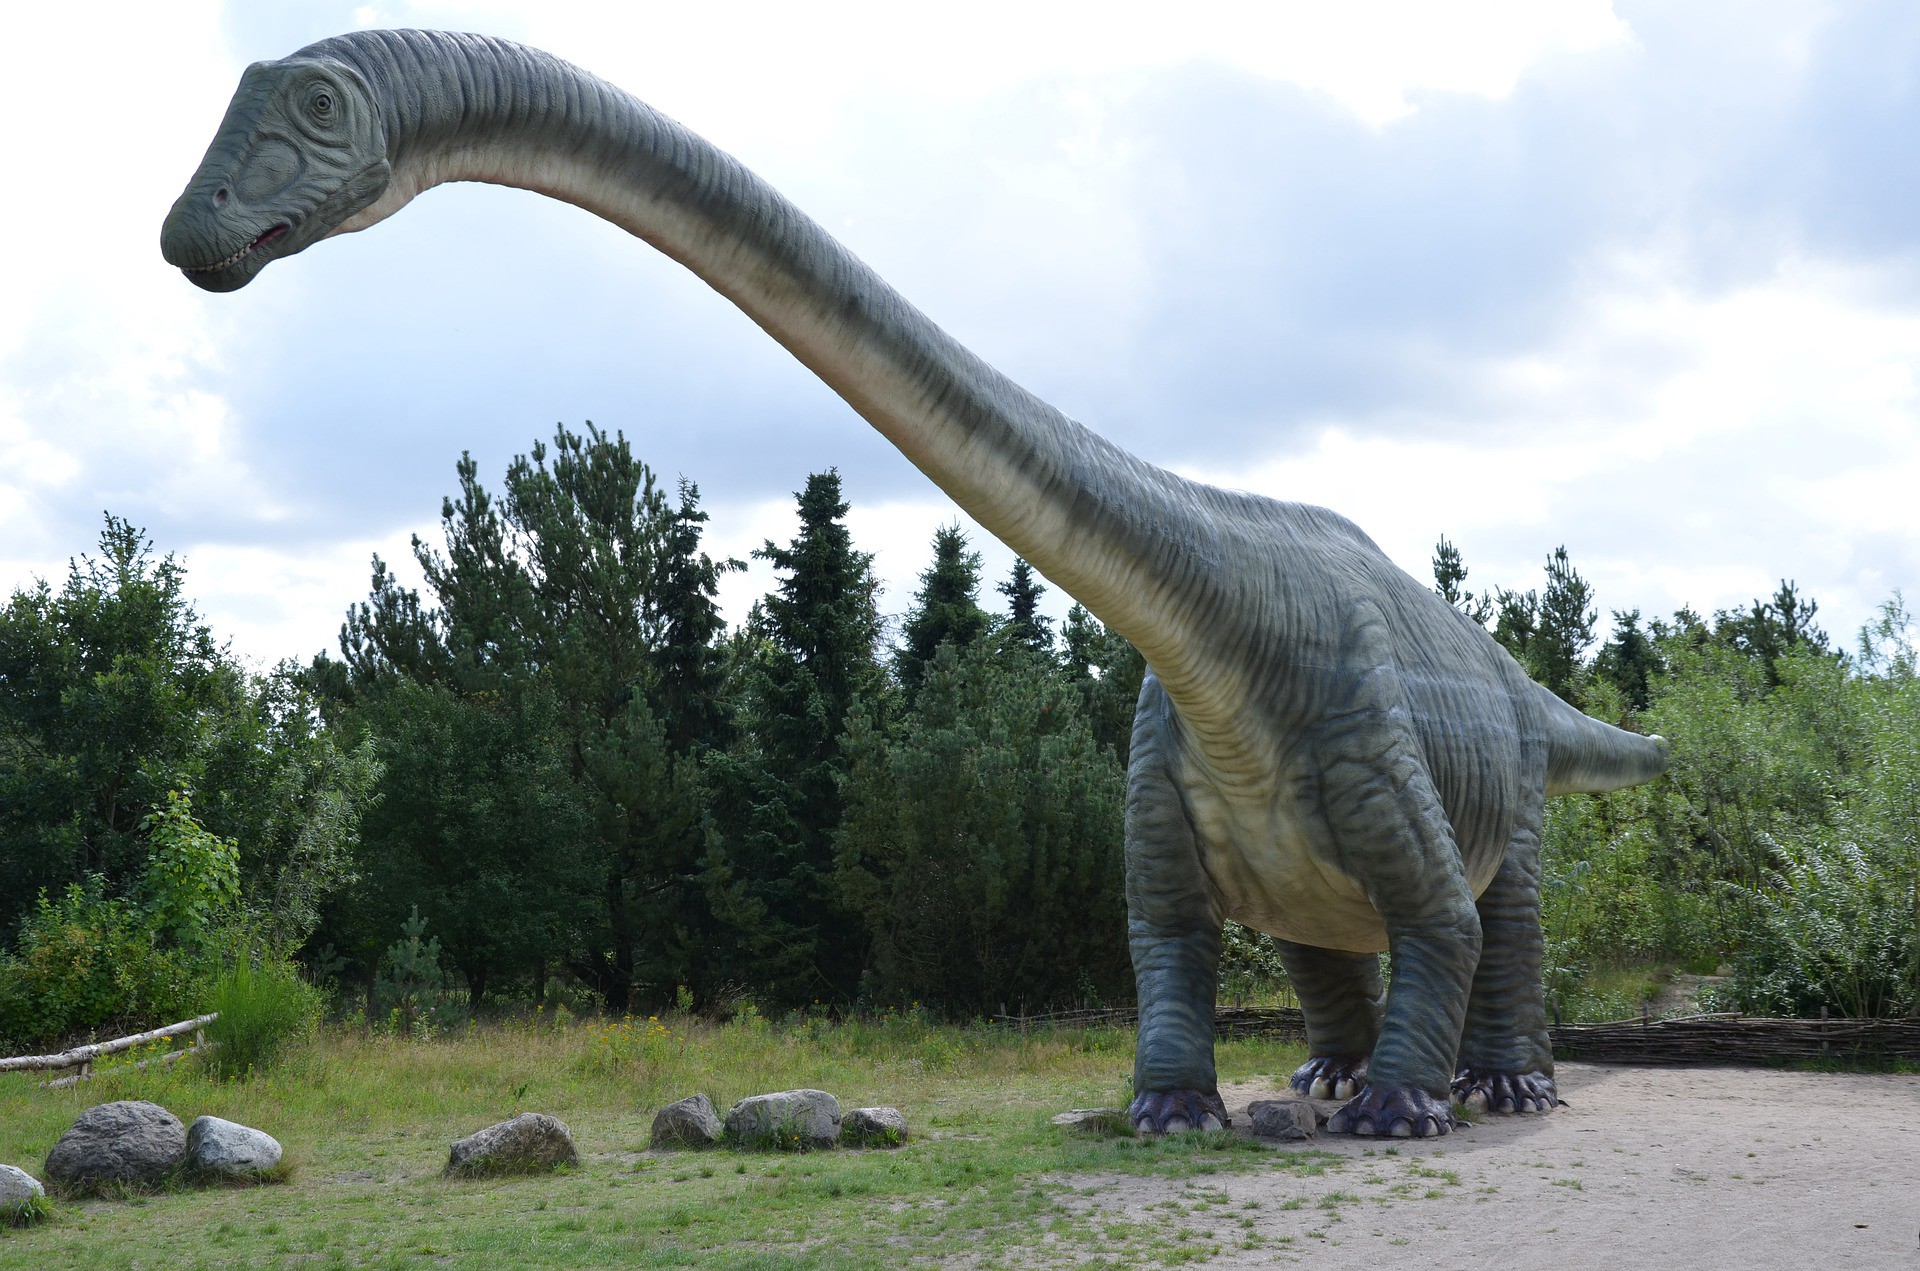 Photo by Frank P. via Pixabay — A picture of the long-necked Brachiosaurus